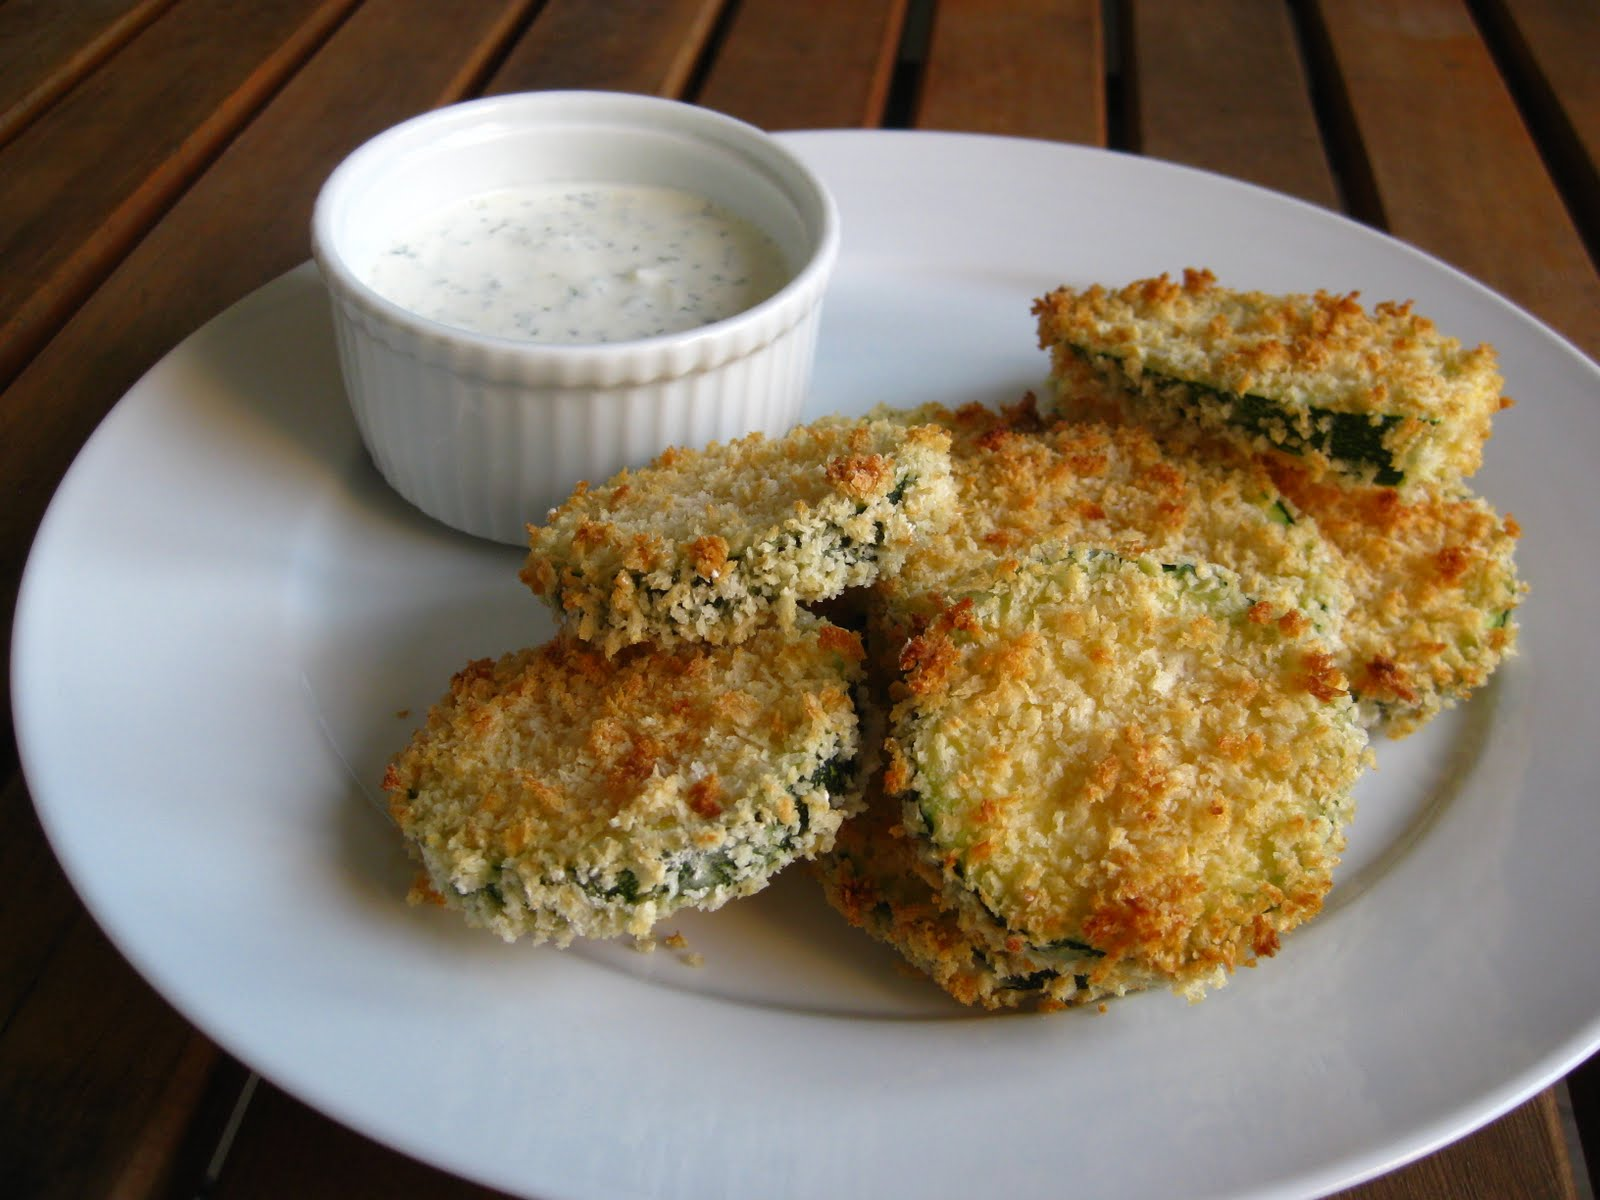 ... Taste of Home Cooking: Crunchy Baked Zucchini with Garlic-Lemon Aioli